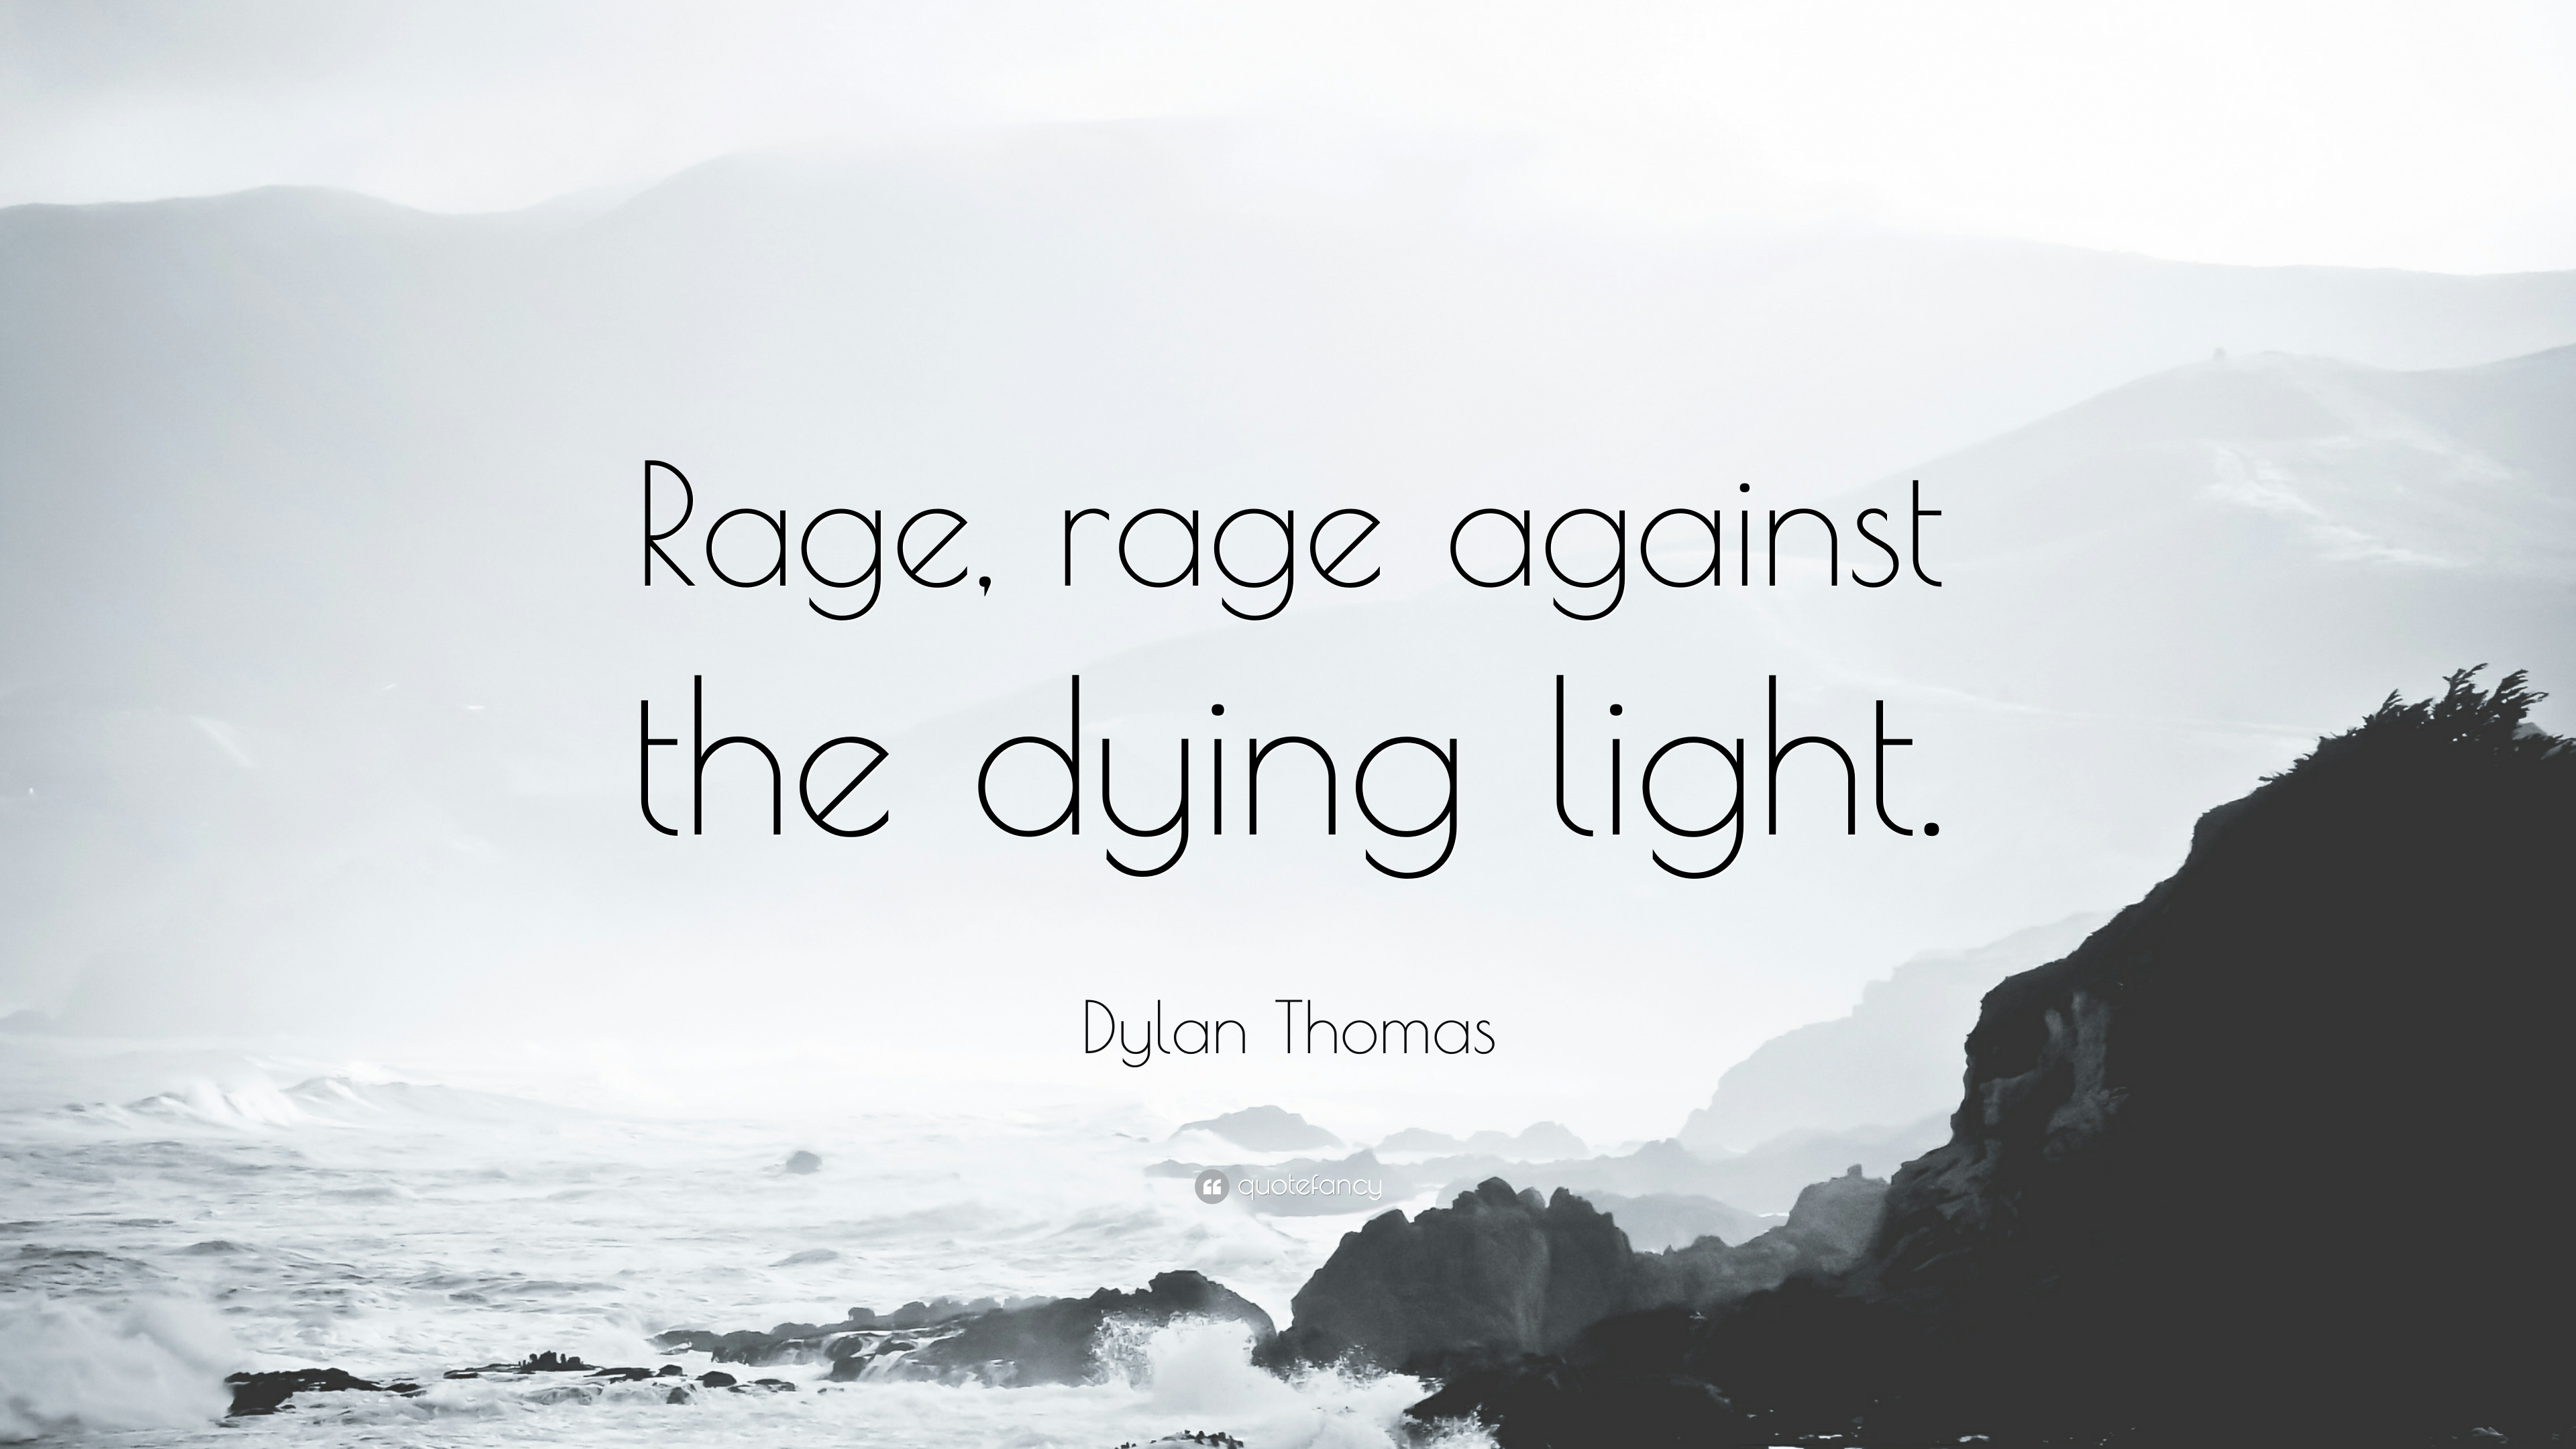 """dying against the light """"rage, rage against the dying of the light"""" by maria popova the story behind dylan thomas's """"do not go gentle into that good night"""" and """"poetry can break open locked chambers of possibility, restore numbed zones to feeling, recharge desire,"""" adrienne rich wrote in contemplating what poetry does."""